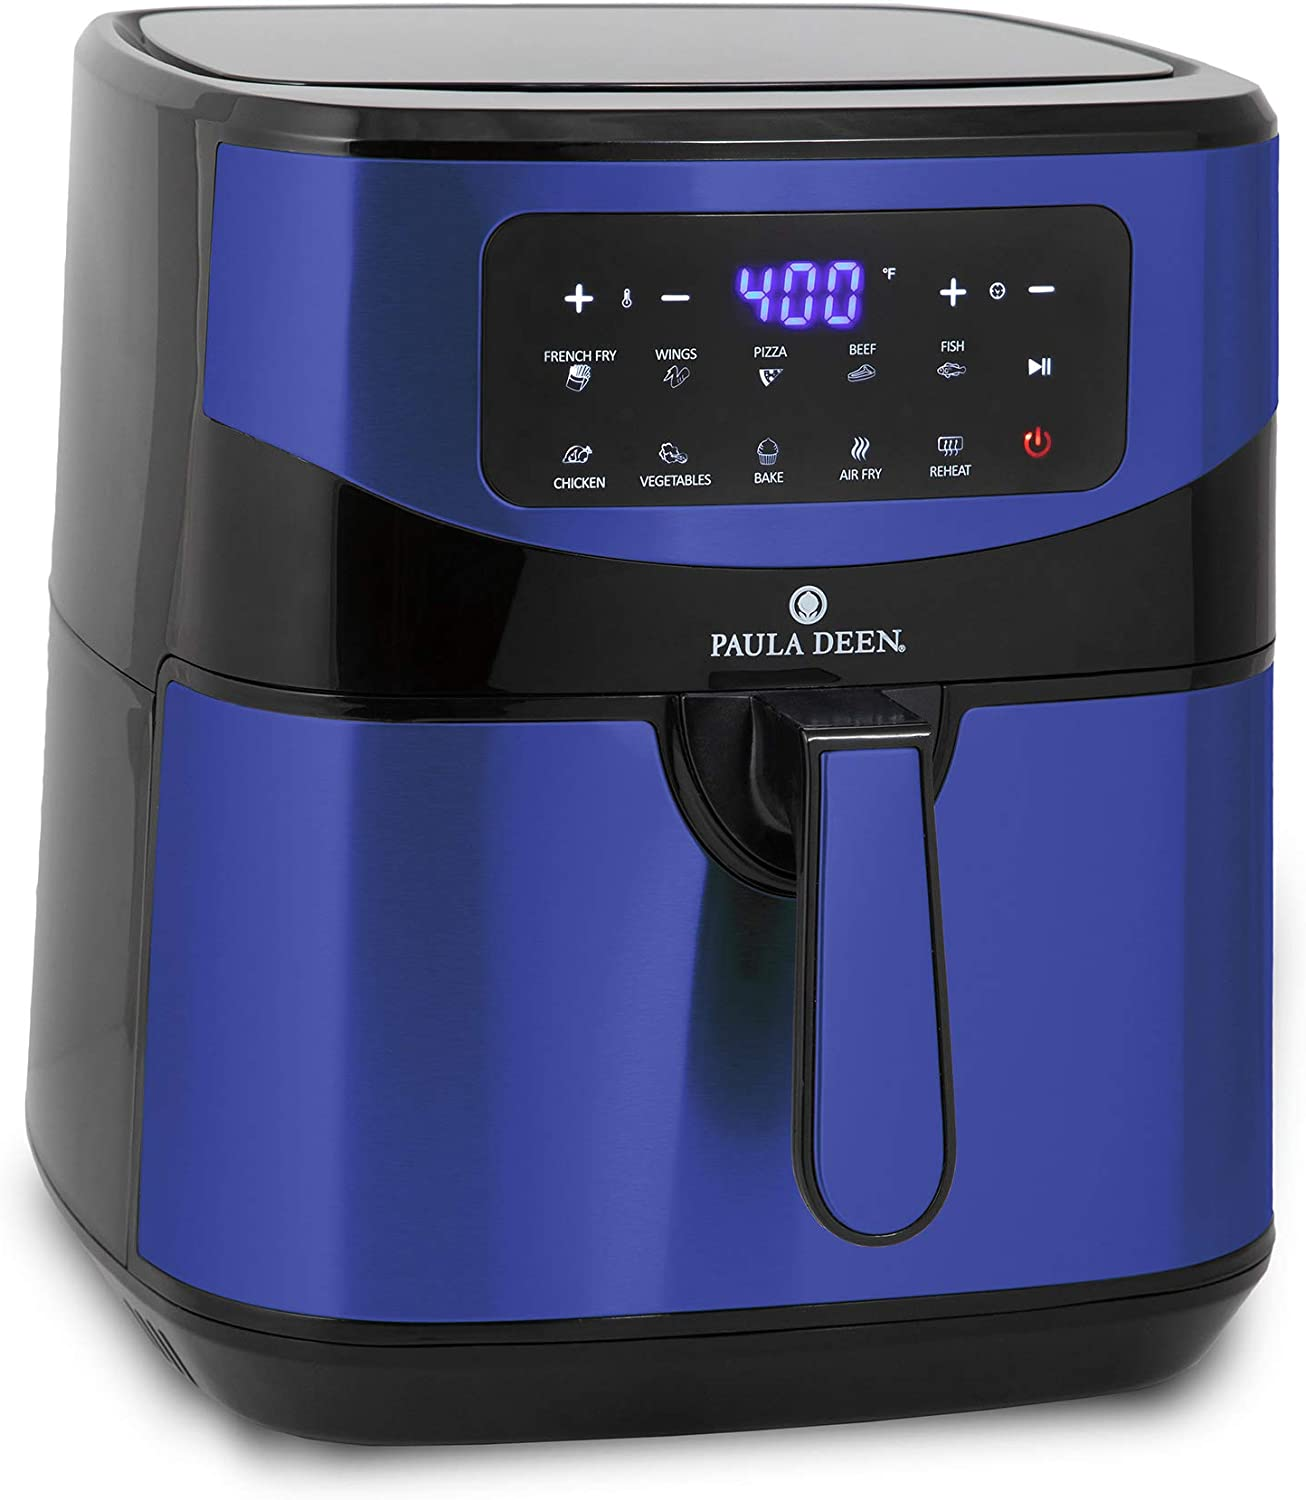 Paula Deen Stainless Steel 10 QT Digital Air Fryer (1700 Watts), LED Display, 10 Preset Cooking Functions, Adjustable Time and Temperature, Ceramic Non-Stick Coating, Auto Shut-Off, 50 Recipes (Blue Stainless)